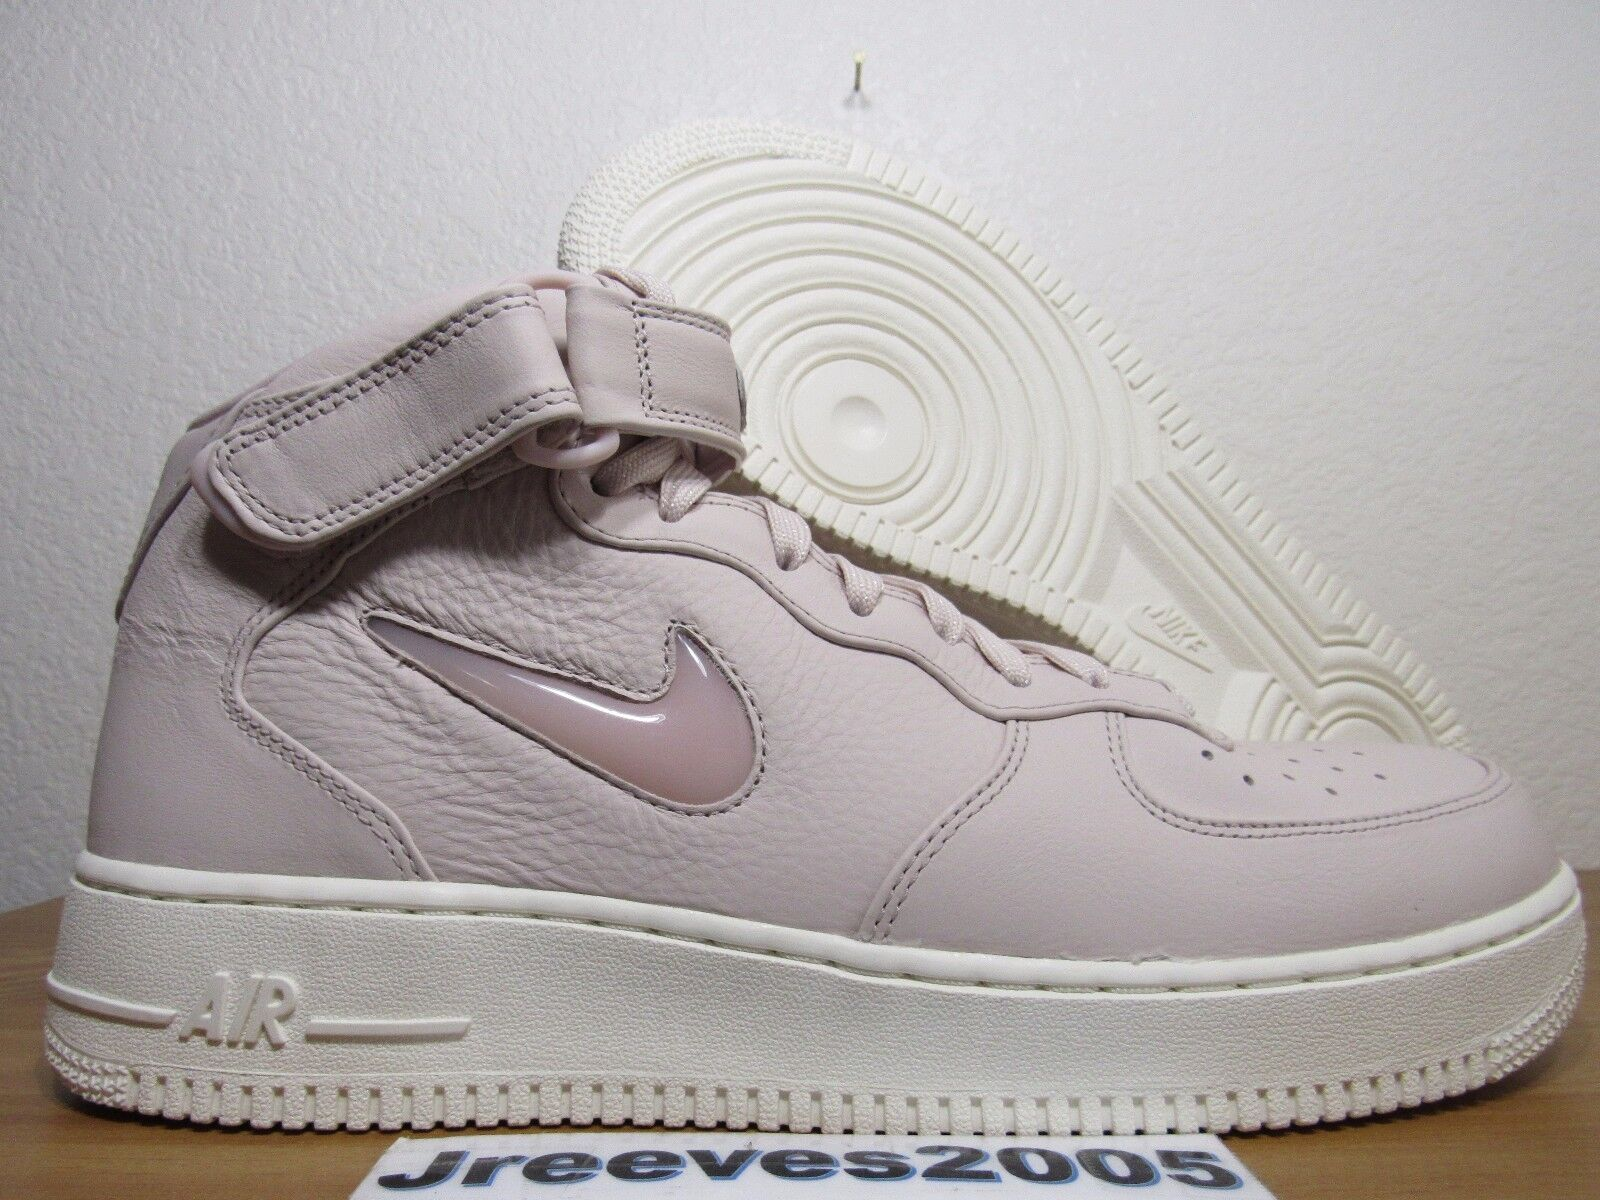 Nike Air Force 1 Mid Retro PRM JEWEL PACK Sz 10.5 100% Auth. Silt AF1 941913 600